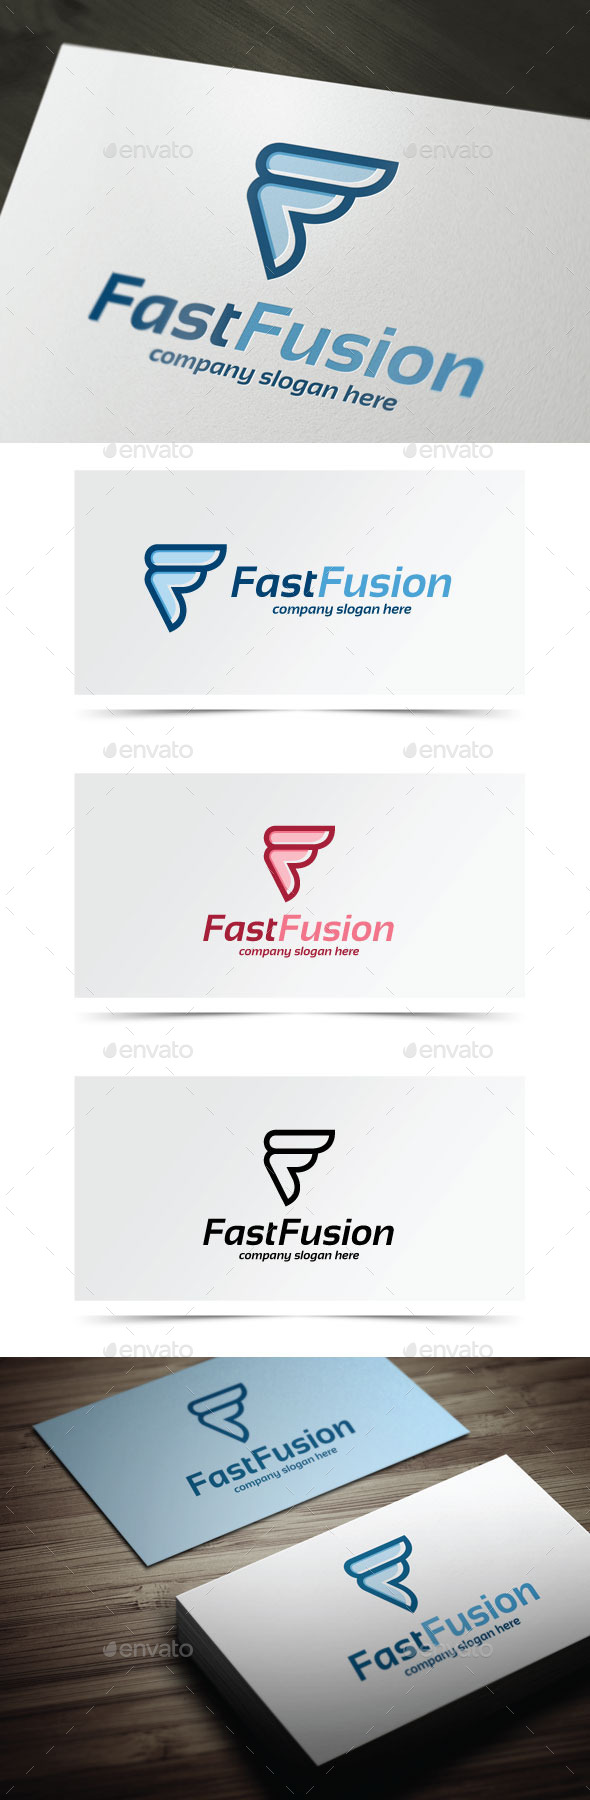 Fast Fusion - Letters Logo Templates